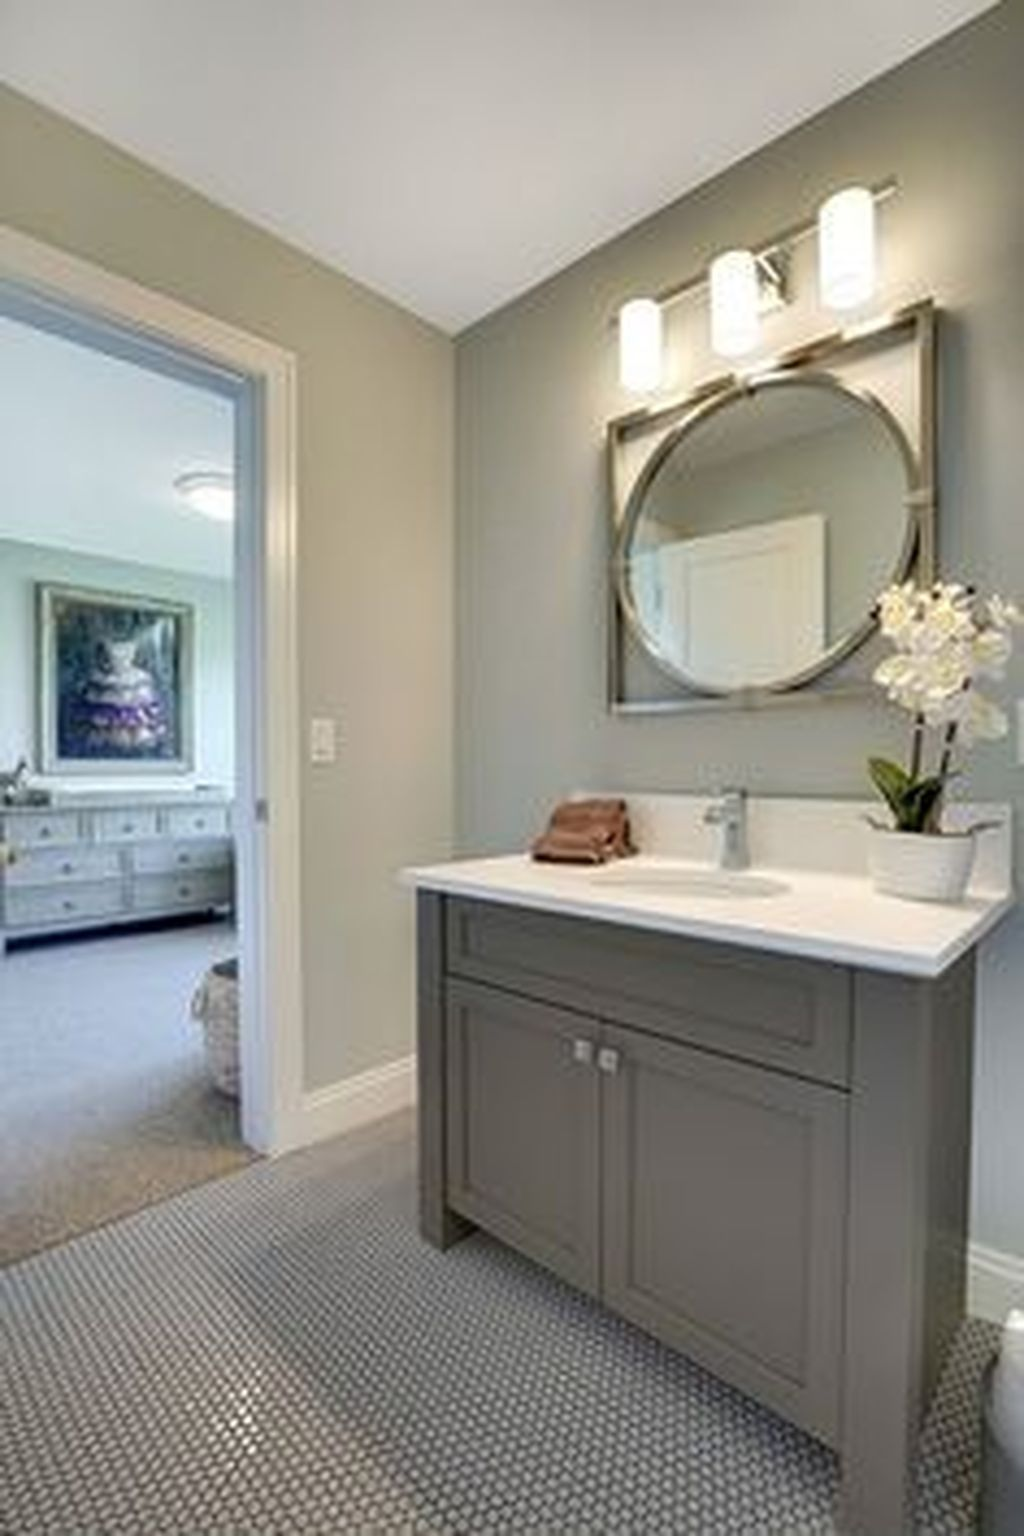 7 Bathroom Cabinet Ideas For Your Inspiration Bathroom Suites And Designs Painting Bathroom Cabinets Bathroom Colors Grey Bathroom Cabinets